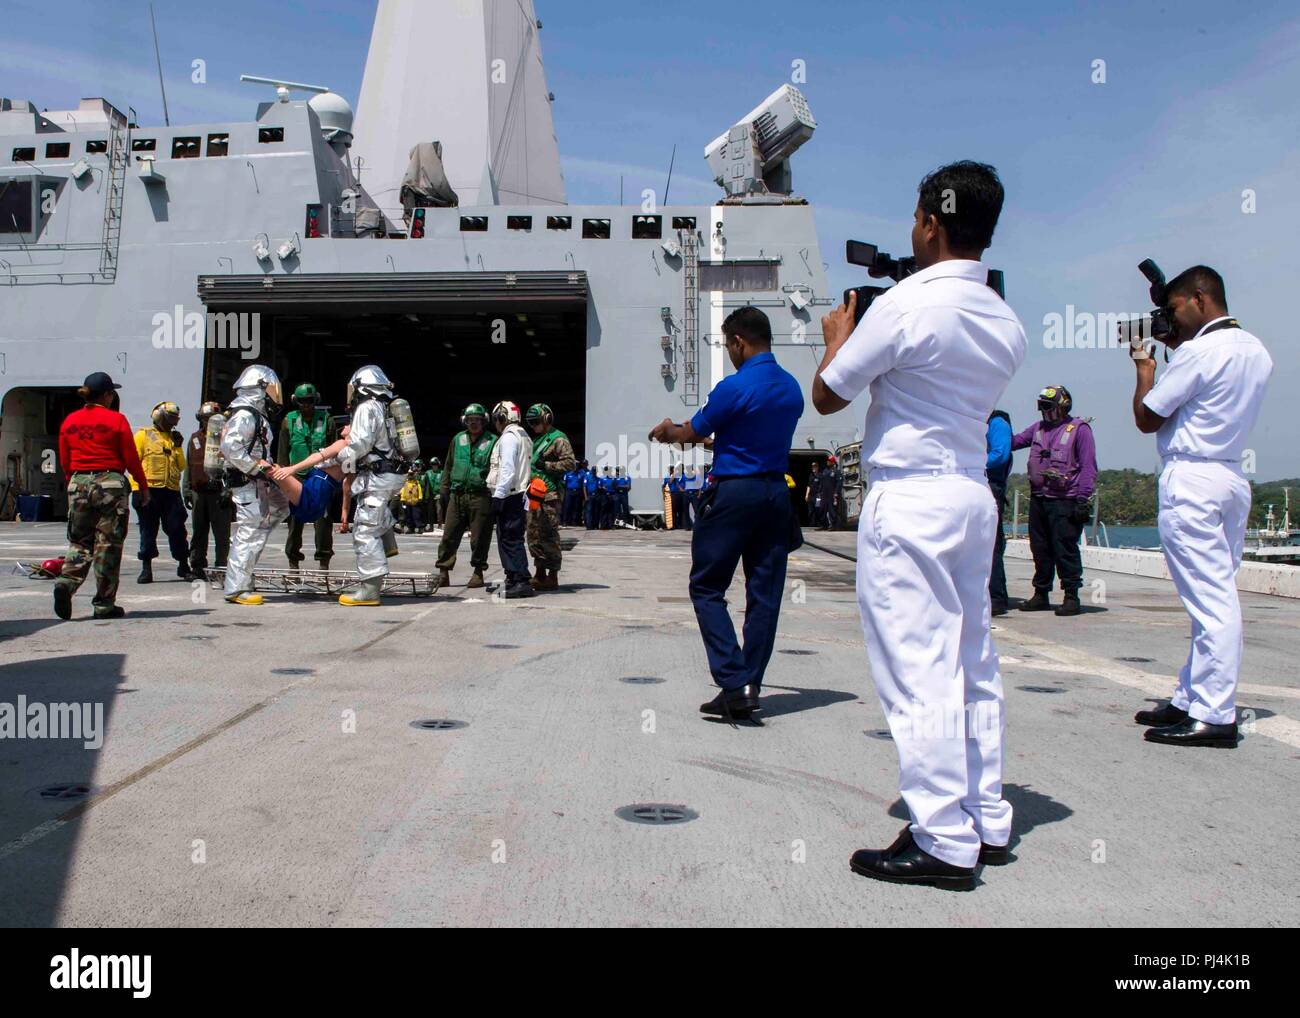 180826-N-PH222-0373 TRINCOMALEE, SRI LANKA (August 26, 2018) Sailors assigned to San Antonio-class amphibious transport dock USS Anchorage (LPD 23) and Marines assigned to the 13th Marine Expeditionary Unit (MEU) demonstrate emergency aircraft fire fighting techniques on the flight deck to the Sri Lanka navy sailors during a regularly scheduled deployment of the Essex Amphibious Ready Group (ARG) and the 13th MEU. Anchorage and the embarked Marines of the 13th MEU are conducting a theater security cooperation exercise with the Sri Lankan navy and Marines. Part of a growing U.S.-Sri Lanka naval - Stock Image